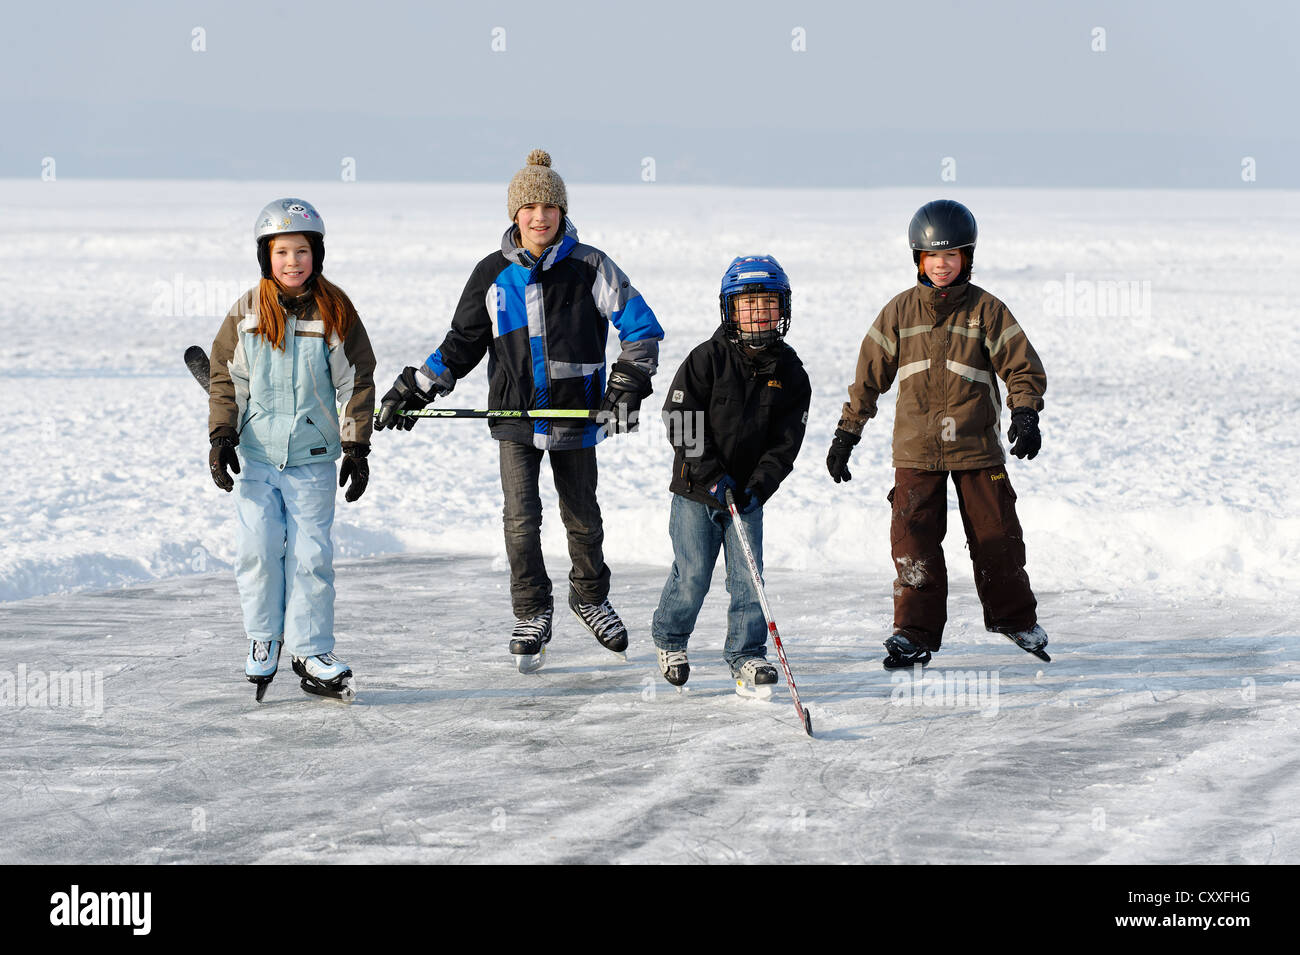 Children playing ice hockey, near St. Heinrich, Lake Starnberg, Five Lakes region, Upper Bavaria, Bavaria - Stock Image